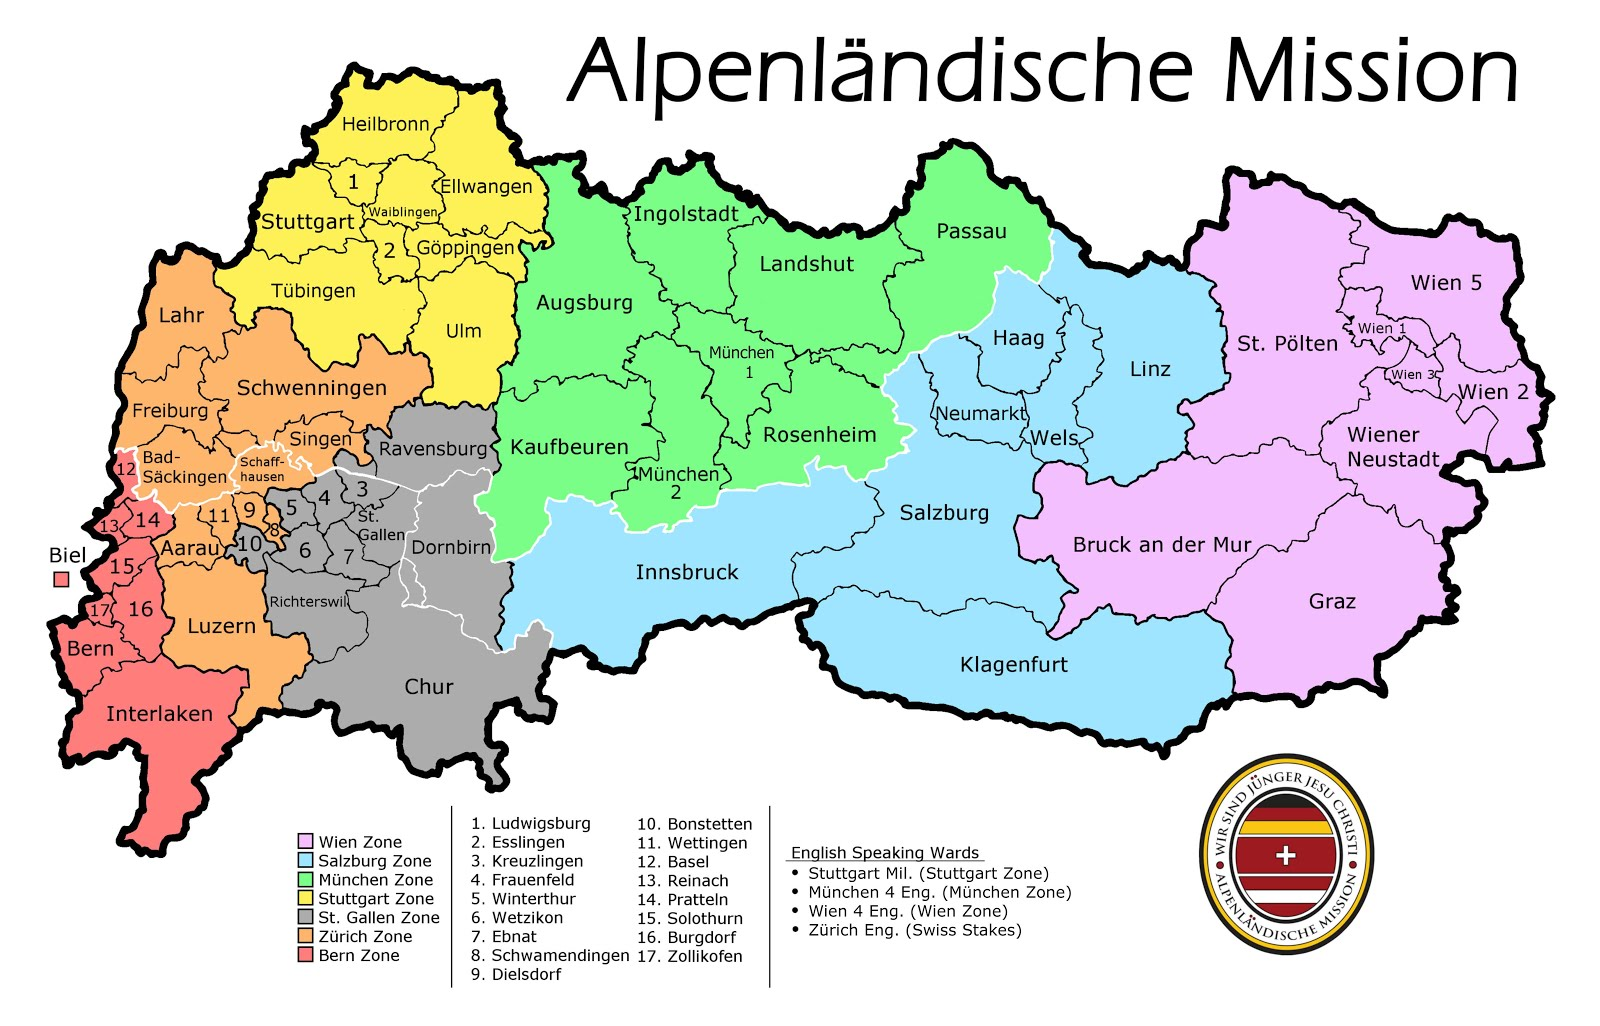 Alpenländische Mission Zones/Stakes Map